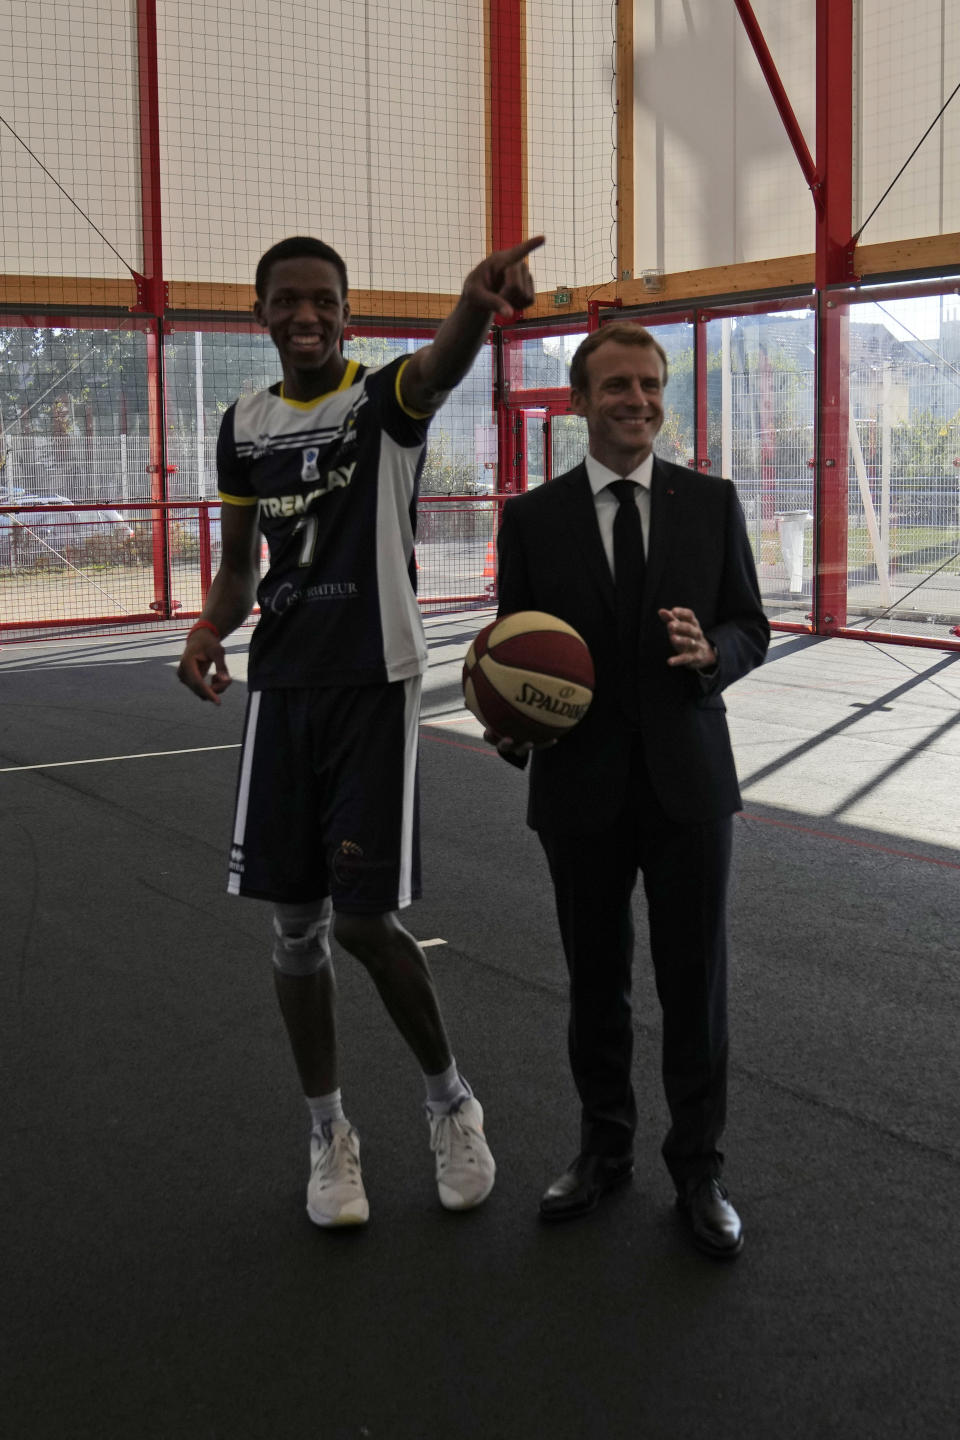 French President Emmanuel Macron holds the ball as he speaks to a member of a basketball team at a basketball playground in Tremblay-en-France, outside Paris, Thursday, Oct.14, 2021. French President Emmanuel Macron will promote sports ahead of the 2024 Olympic Games in Paris. (AP Photo/Francois Mori, Pool)